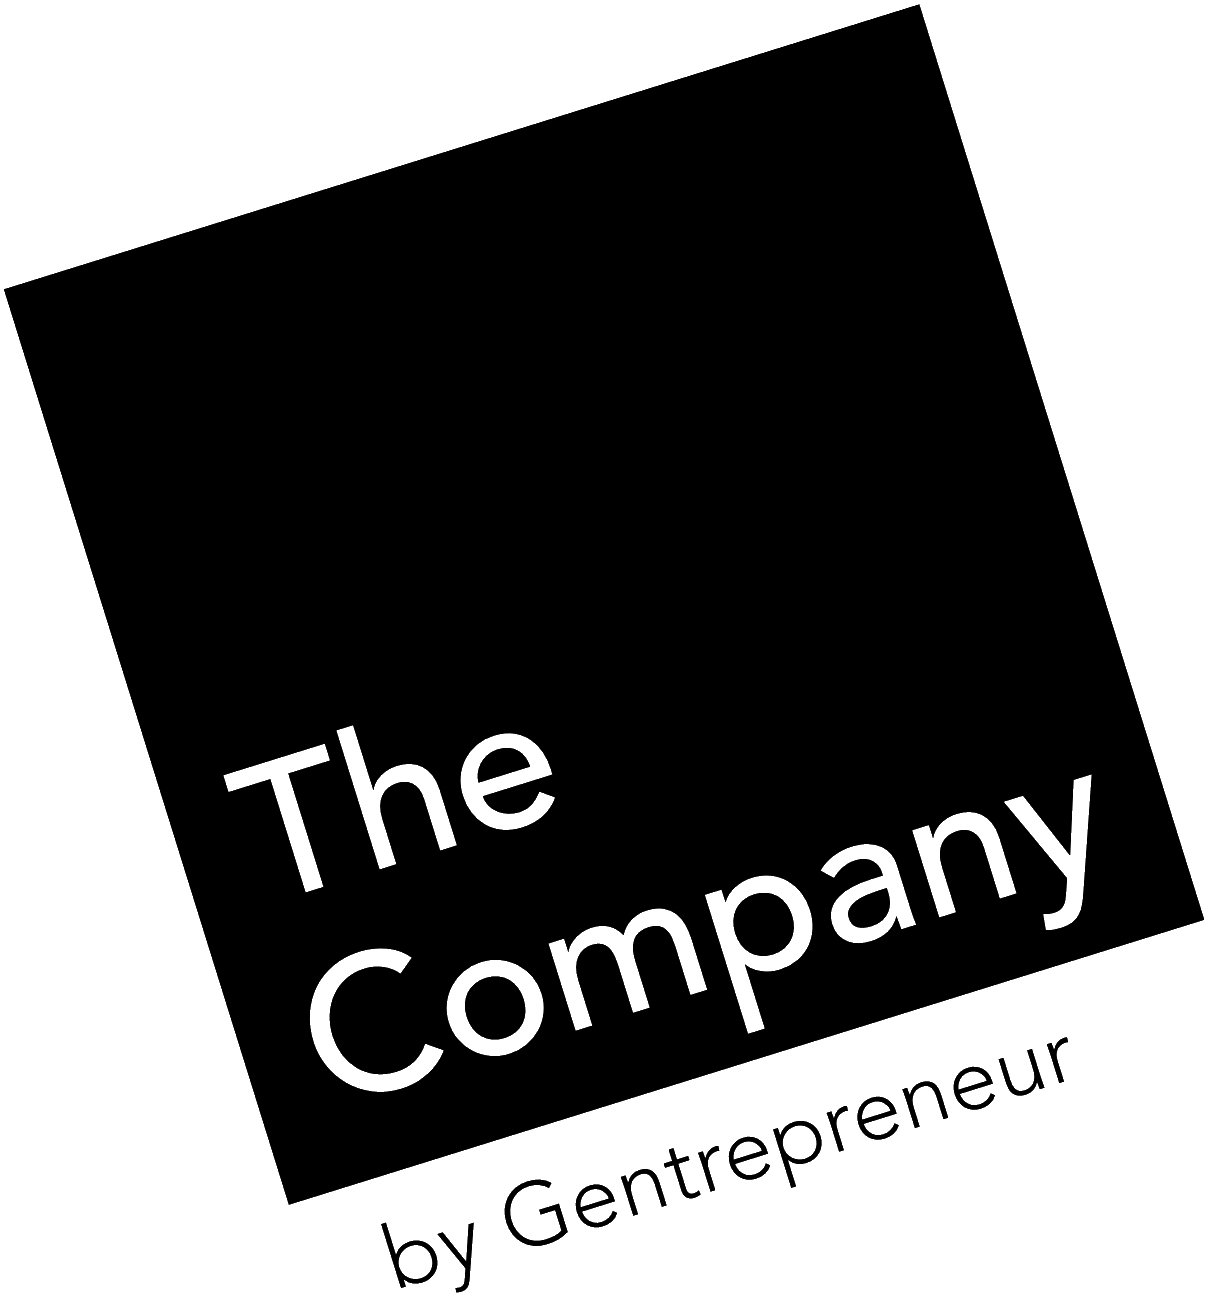 The Company by Gentrepreneur